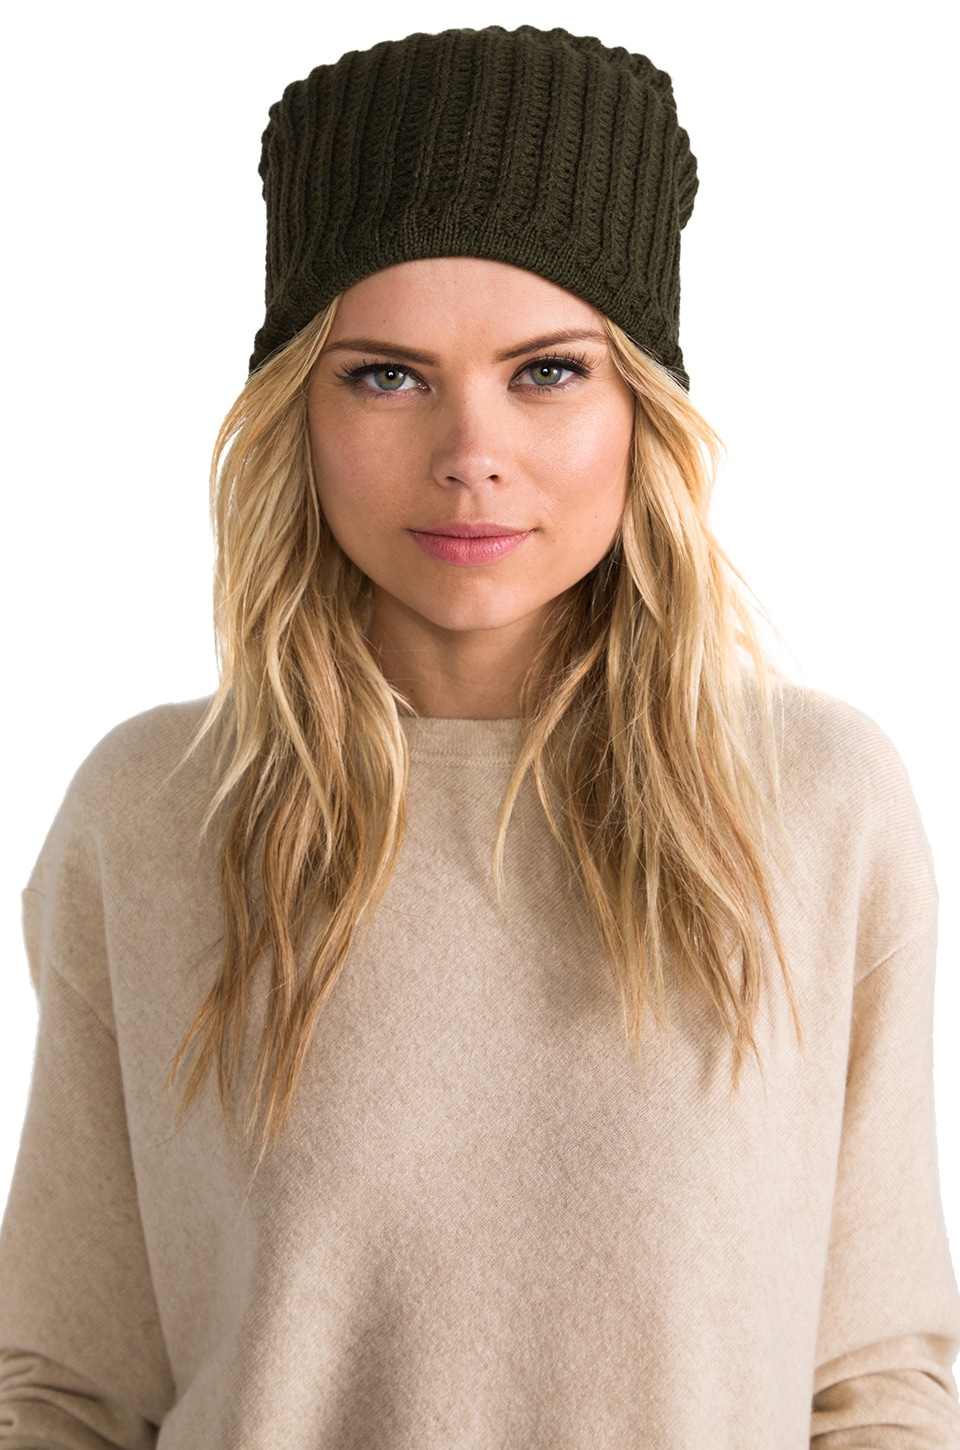 Plush Thermal Knit Beanie in Army Green